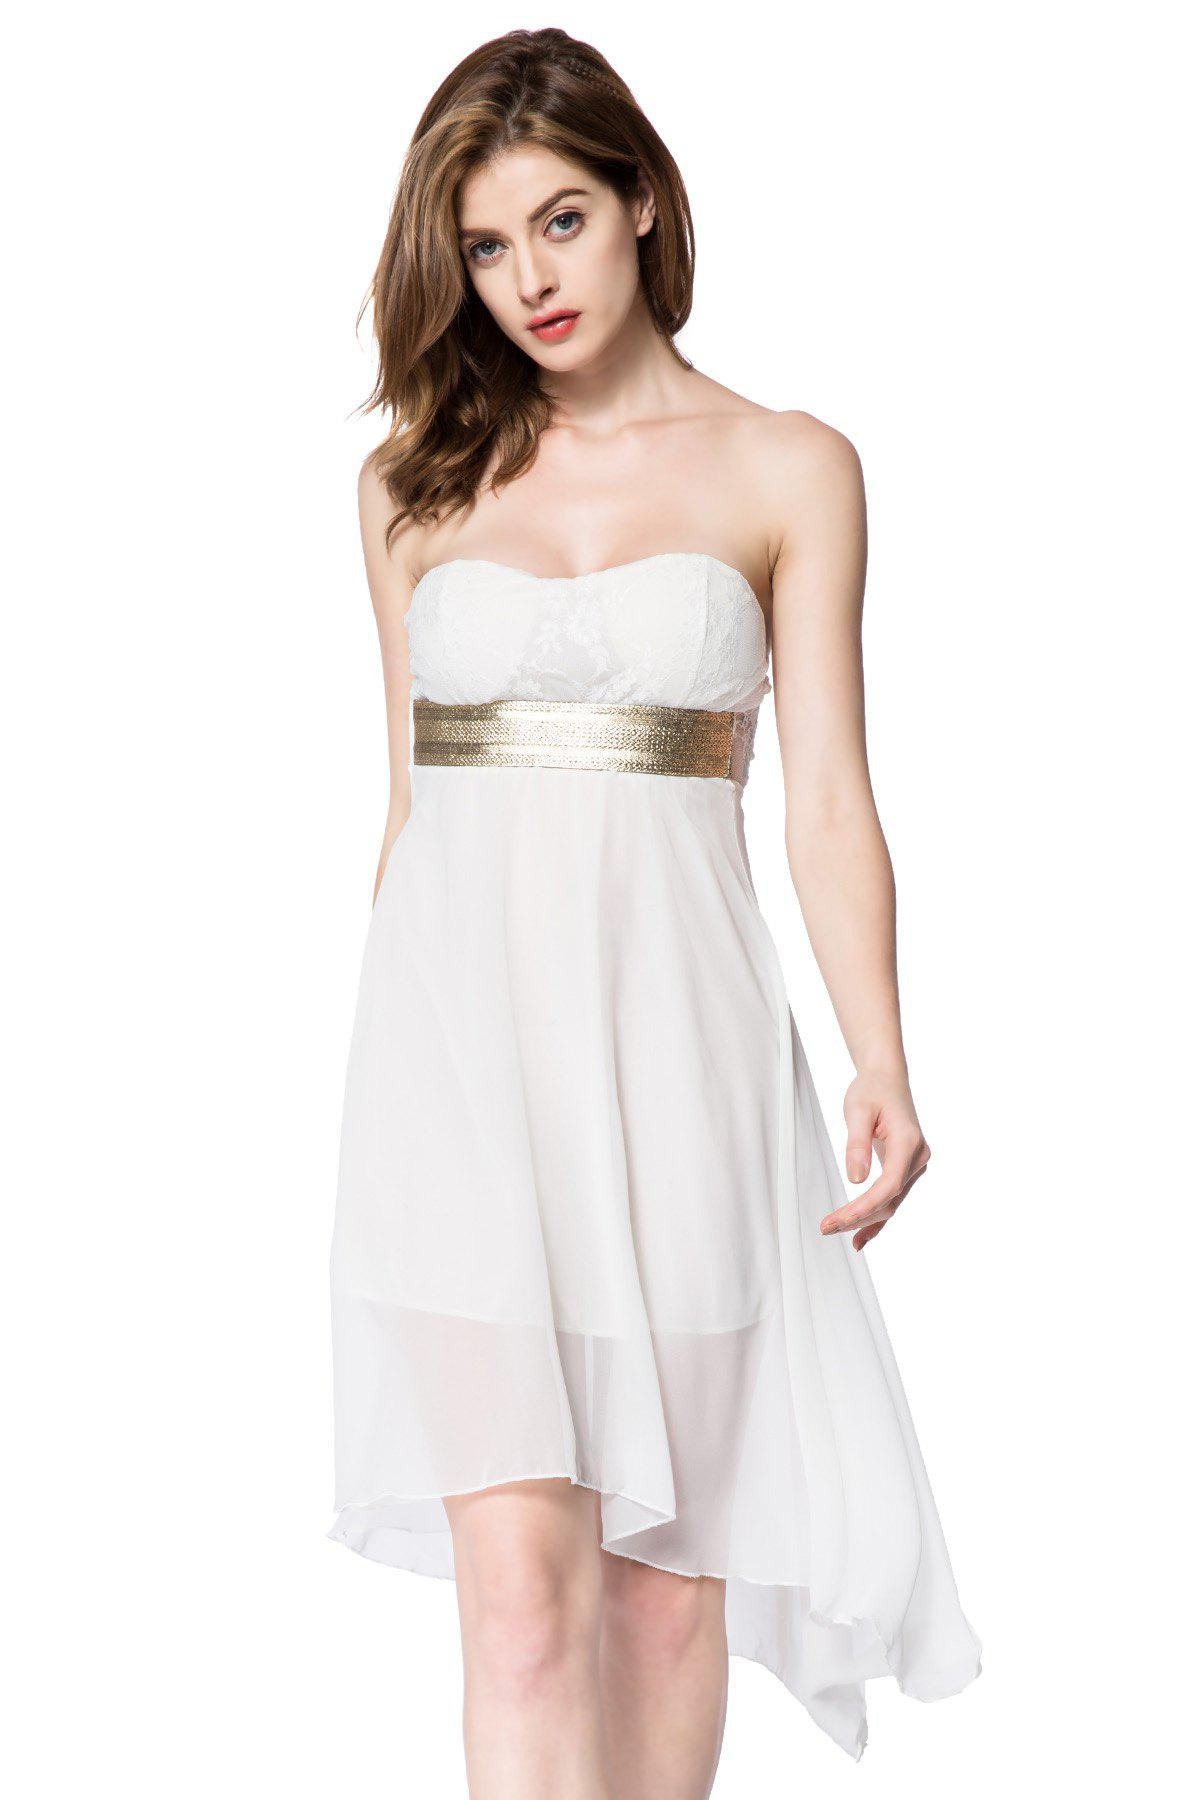 Buy Strapless High Low Maid of Honor Dress